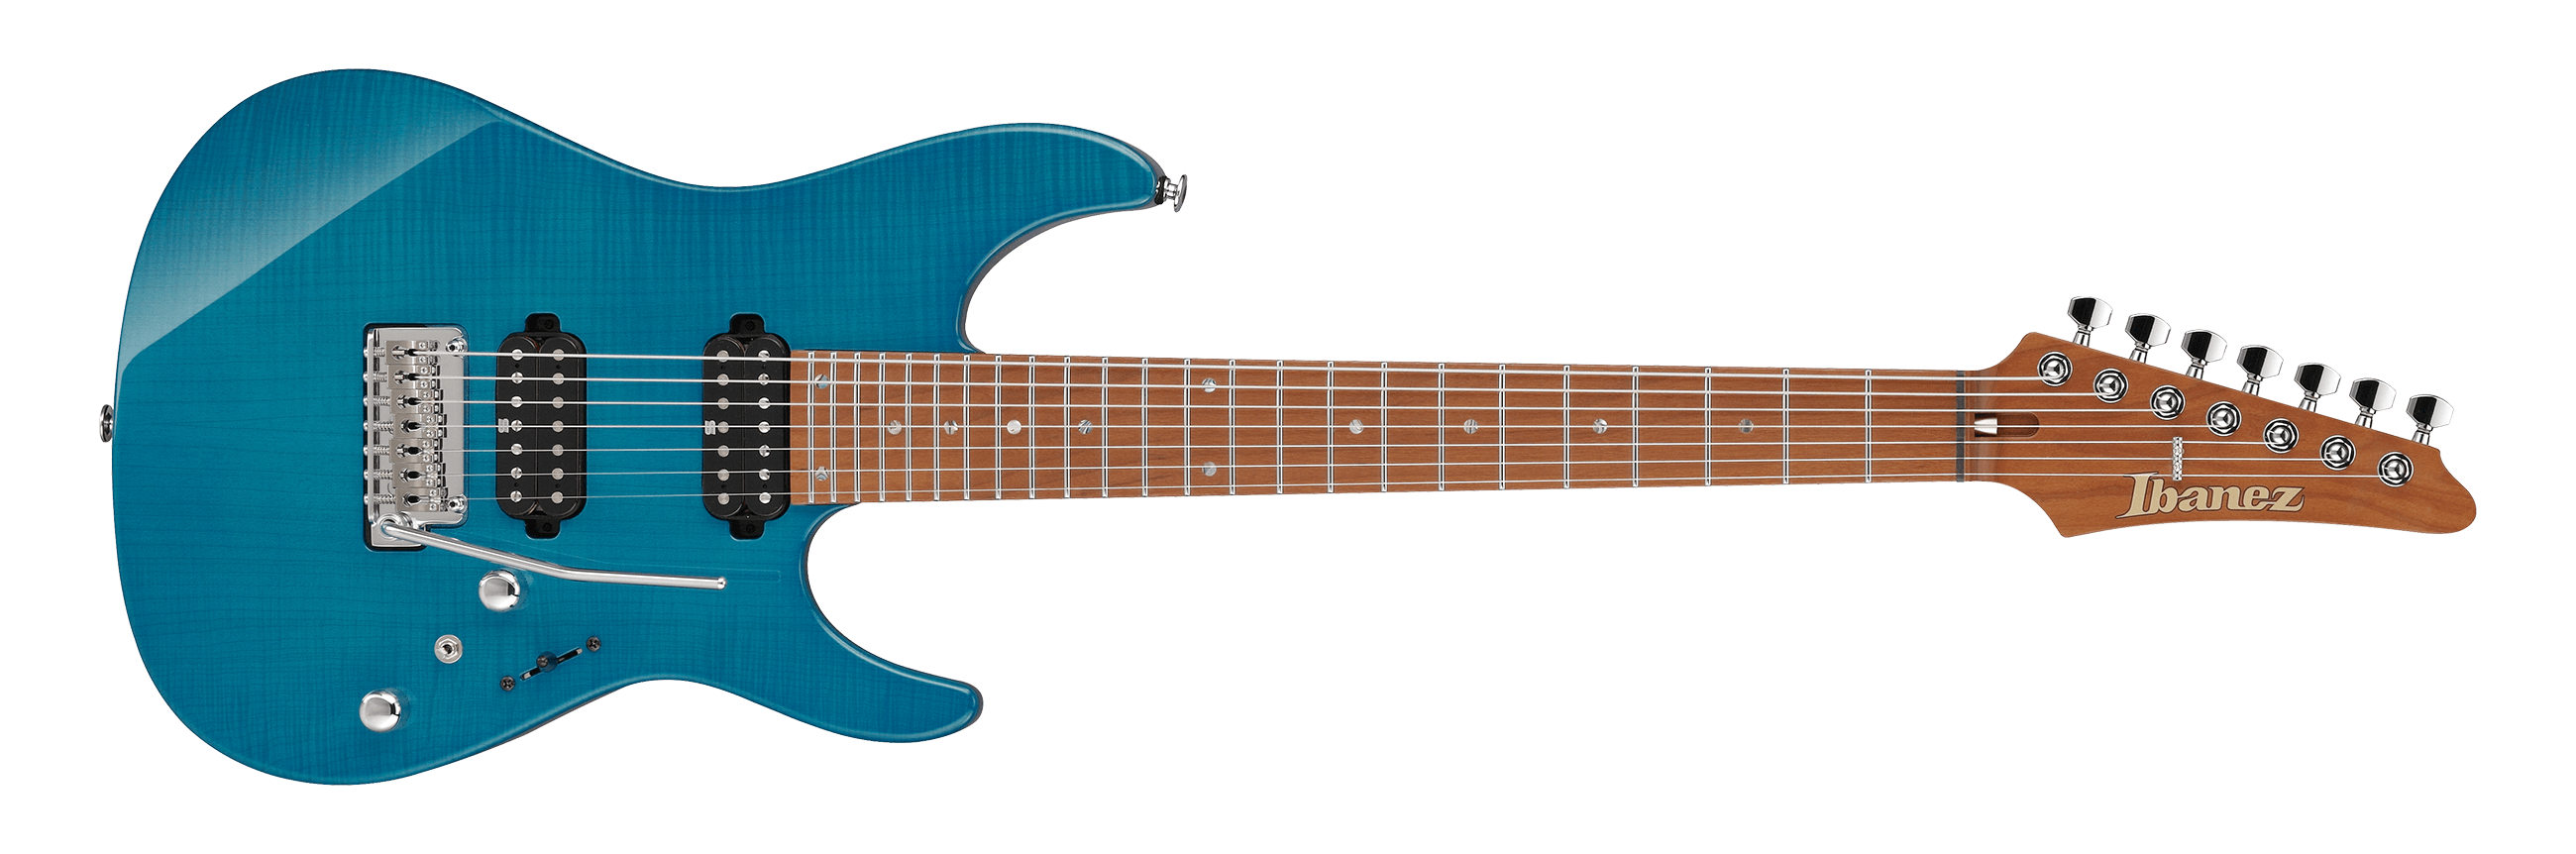 MM7   MM   ELECTRIC GUITARS   PRODUCTS   Ibanez guitars